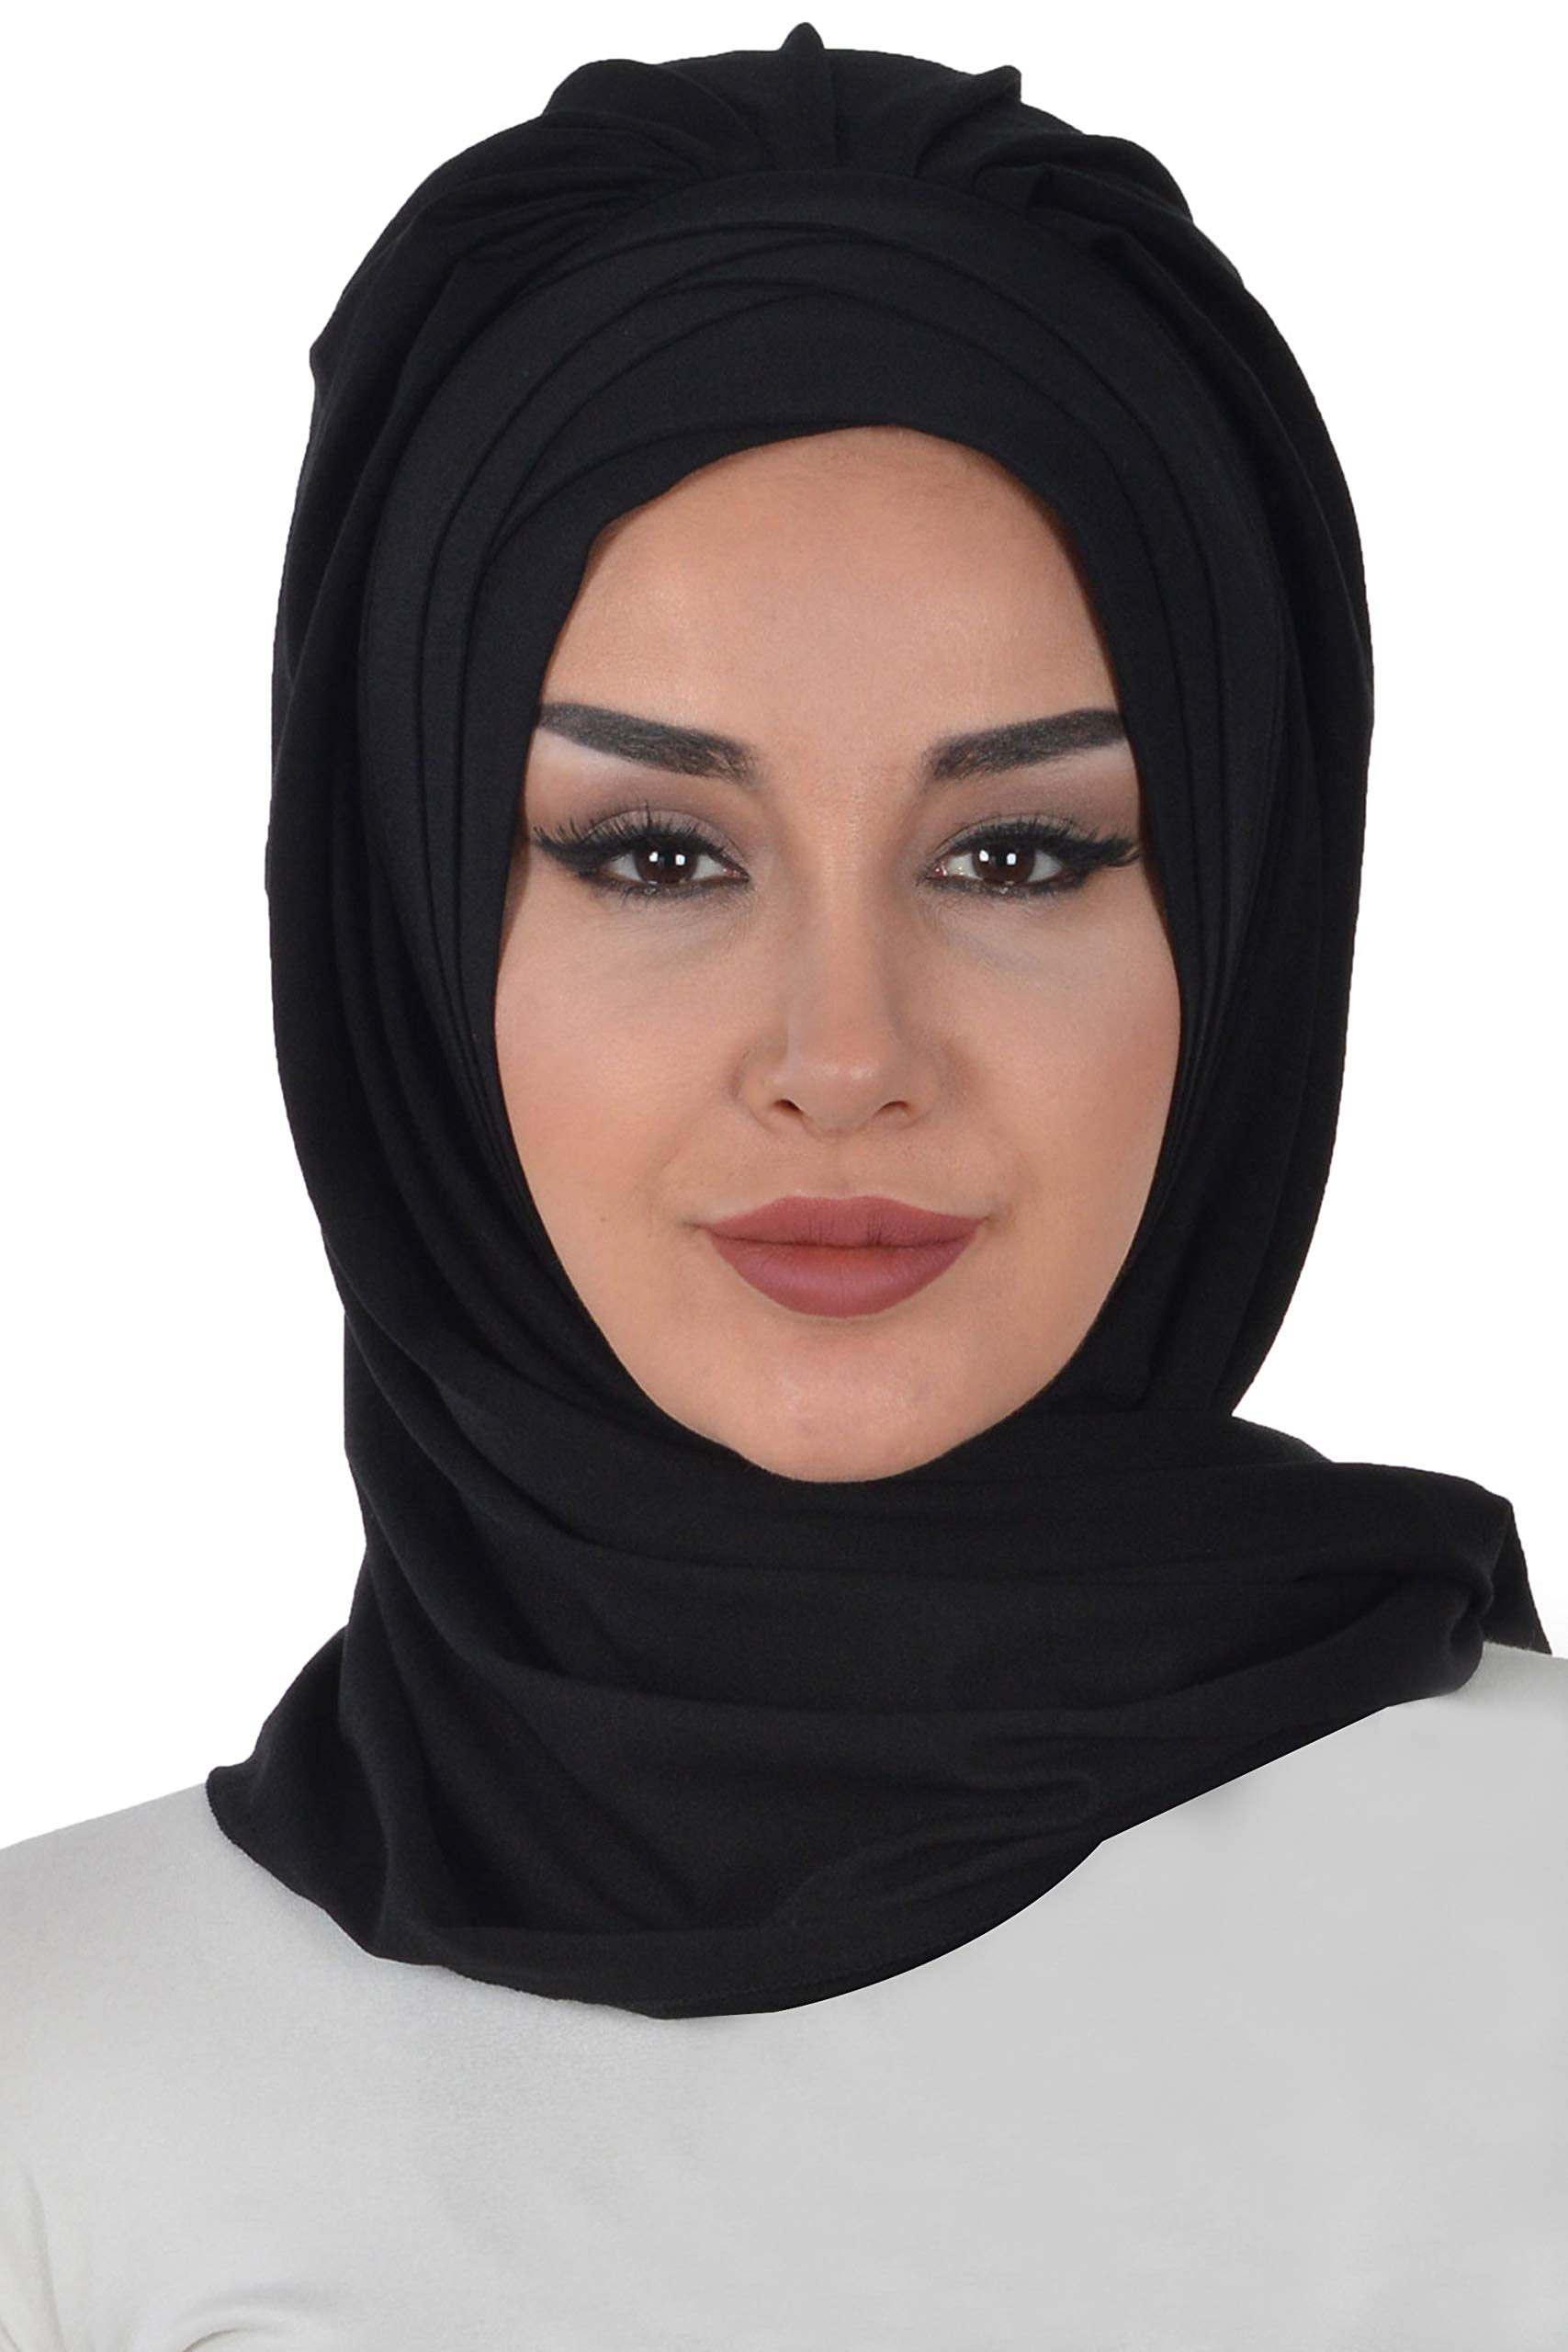 Jersey Shawl for Women Cotton Head Wrap Instant Modesty Turban Cap Scarf